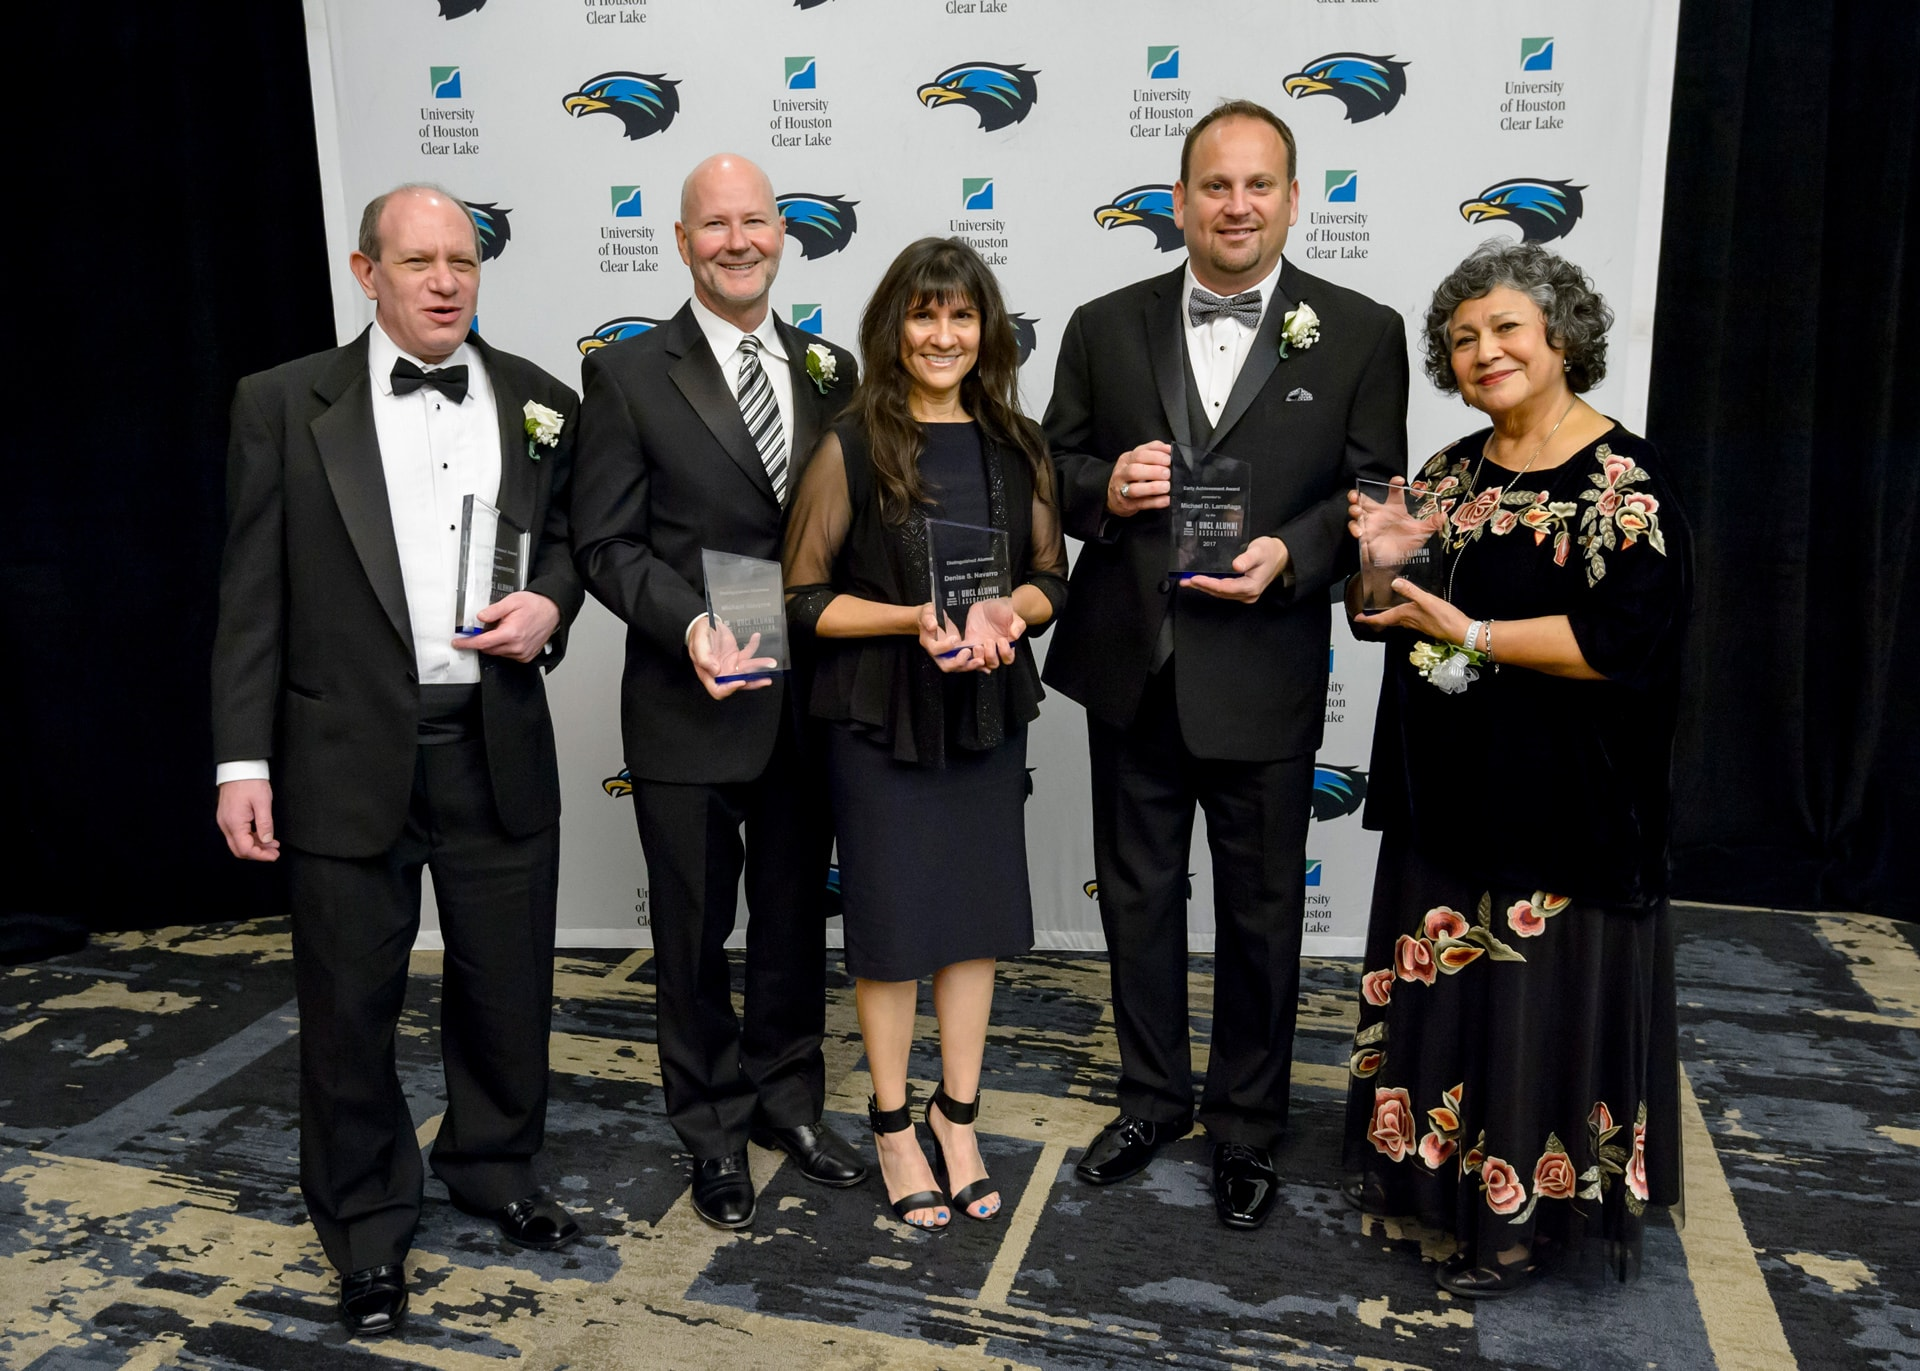 Distinguished alumni, outstanding professor lauded at UHCL celebration